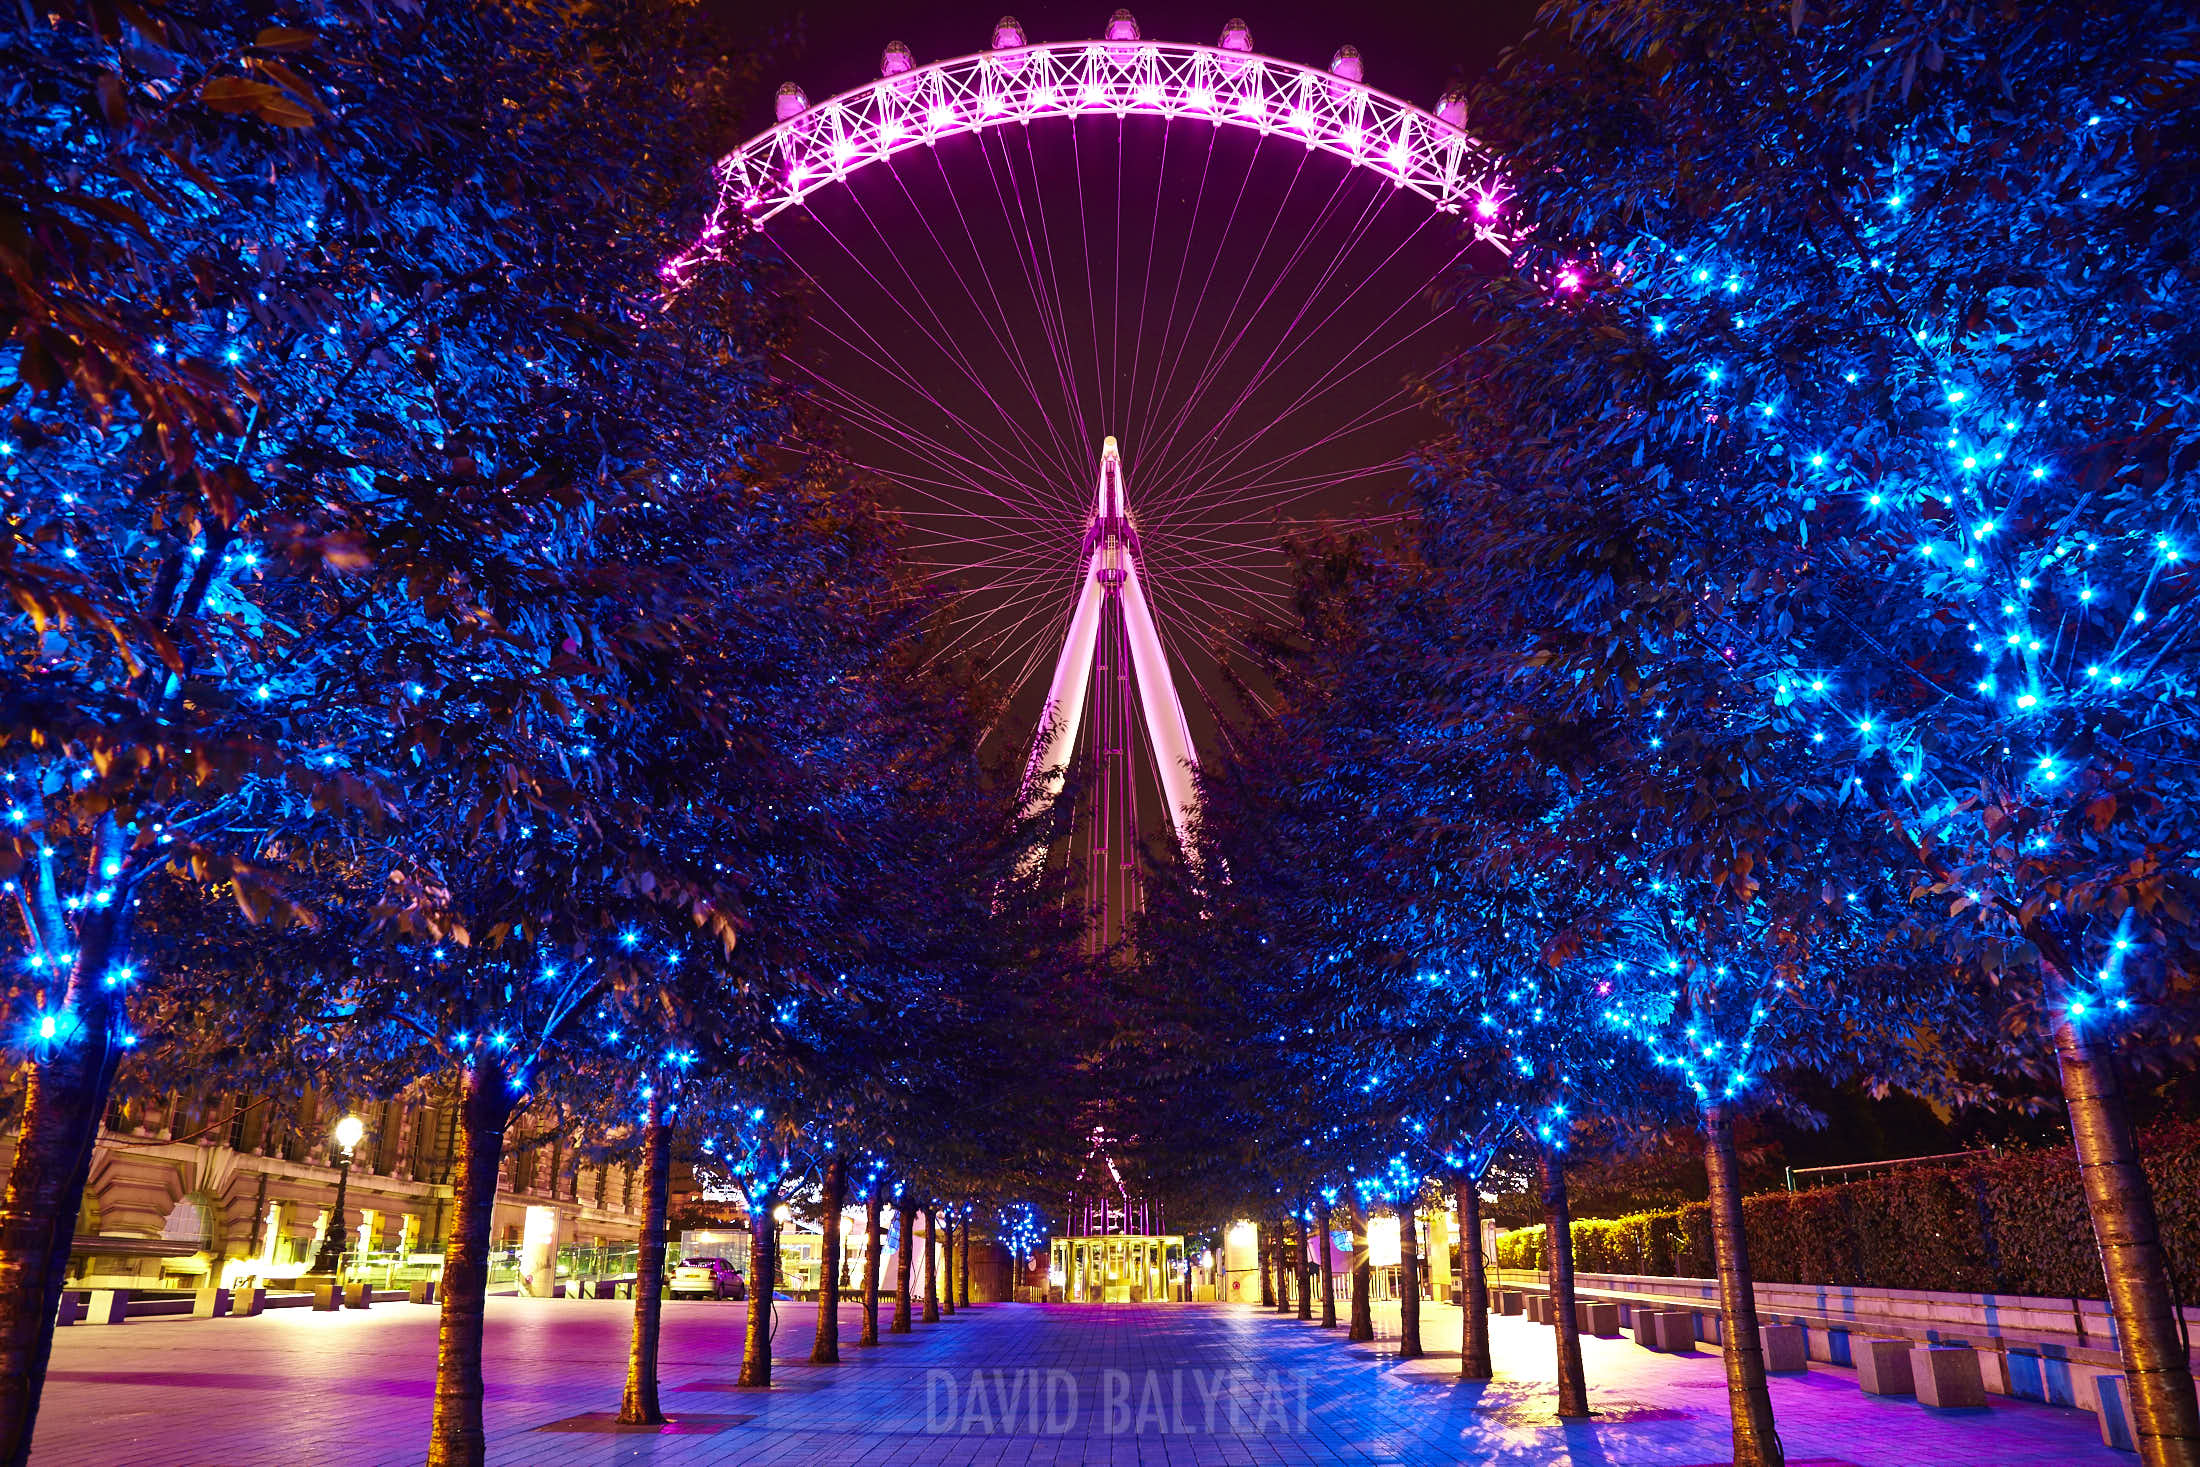 London Eye Jubilee Gardens Promenade cityscape photography